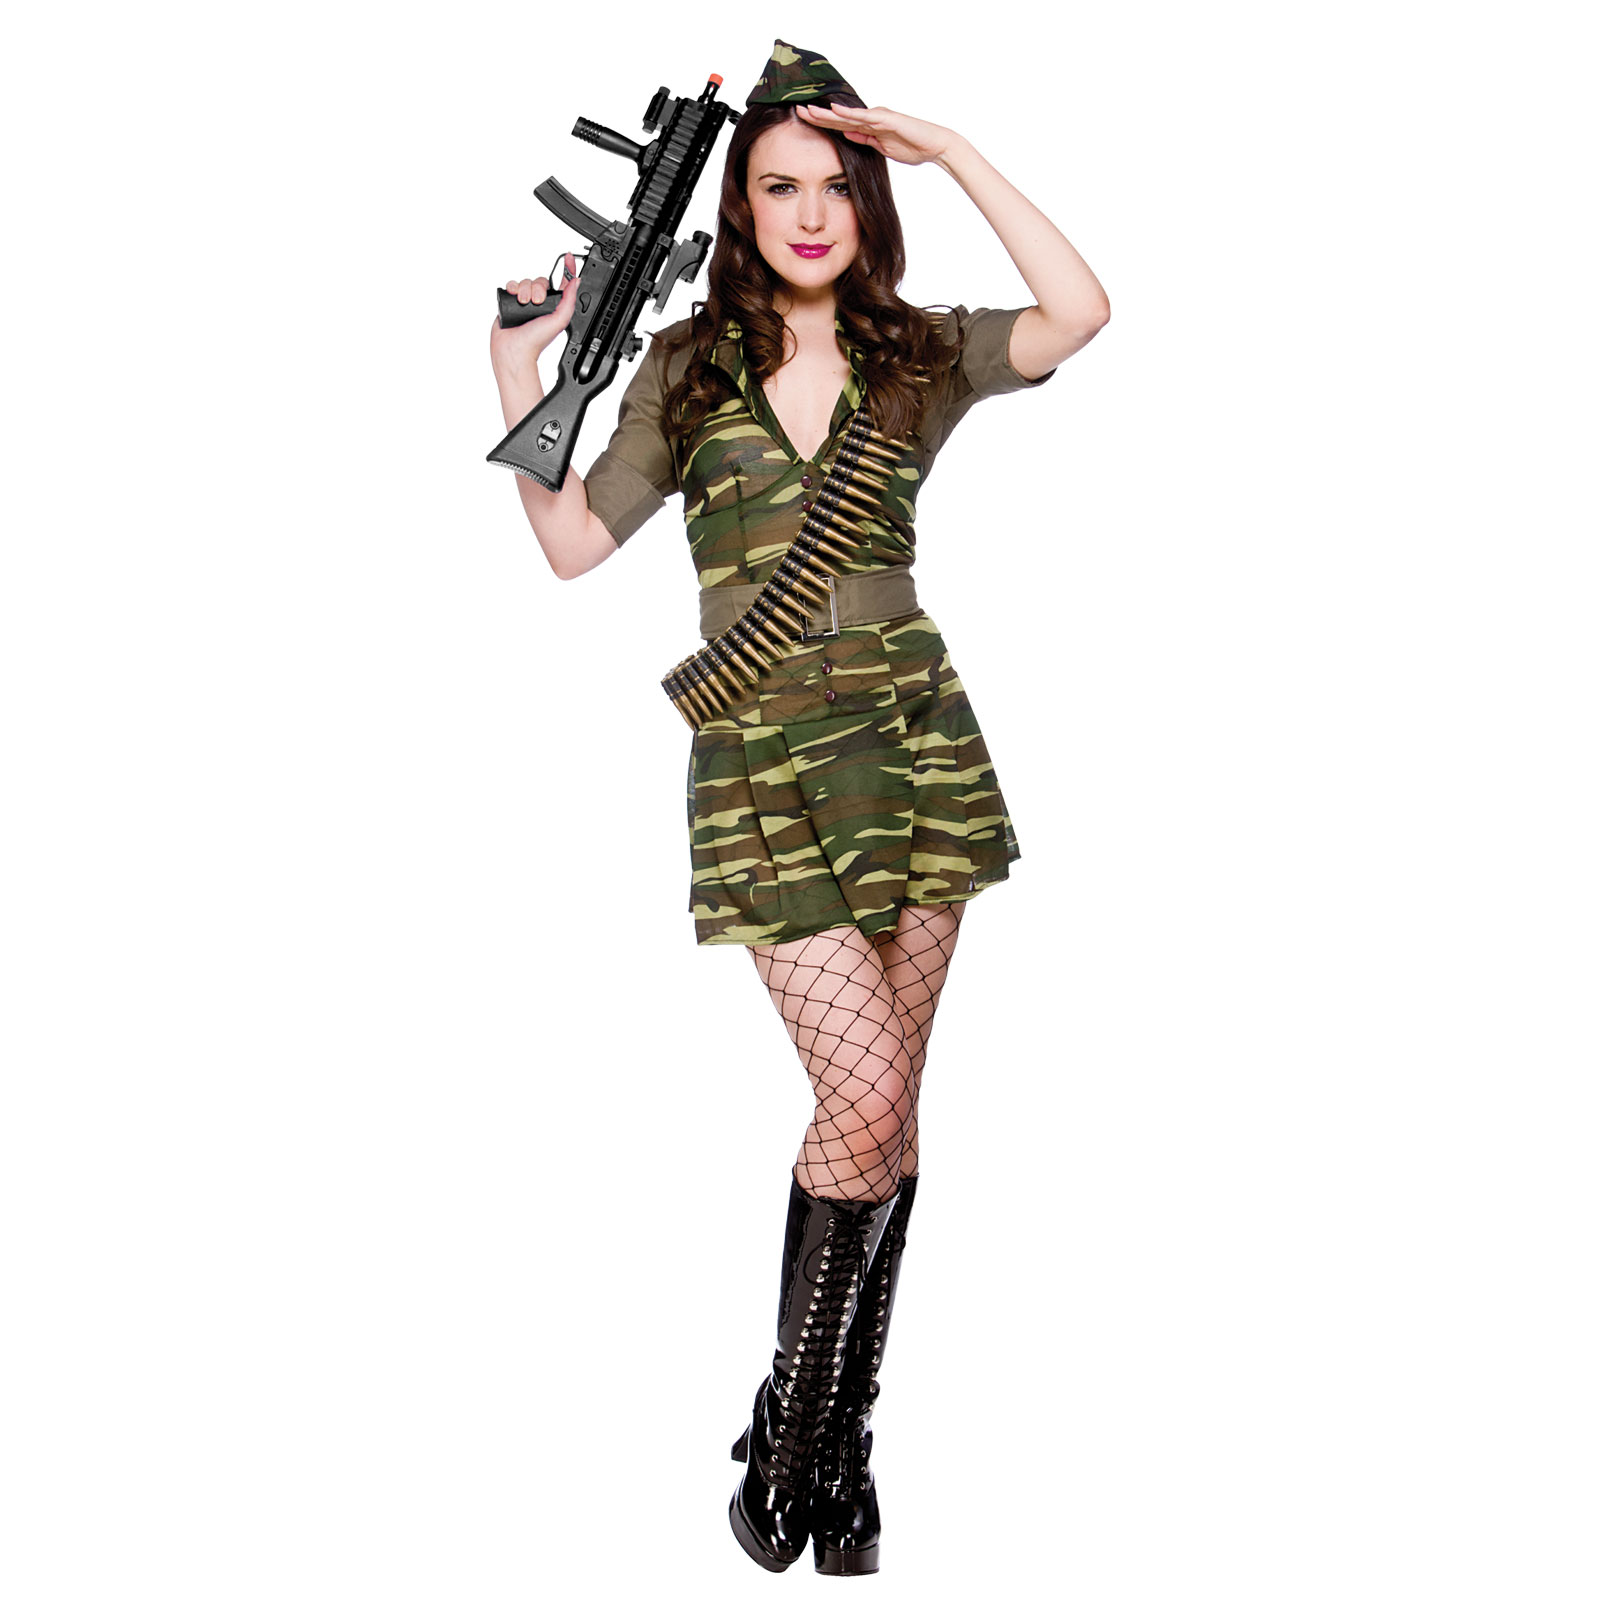 f93b99f8c33 Army Dress for Girls – Fashion dresses